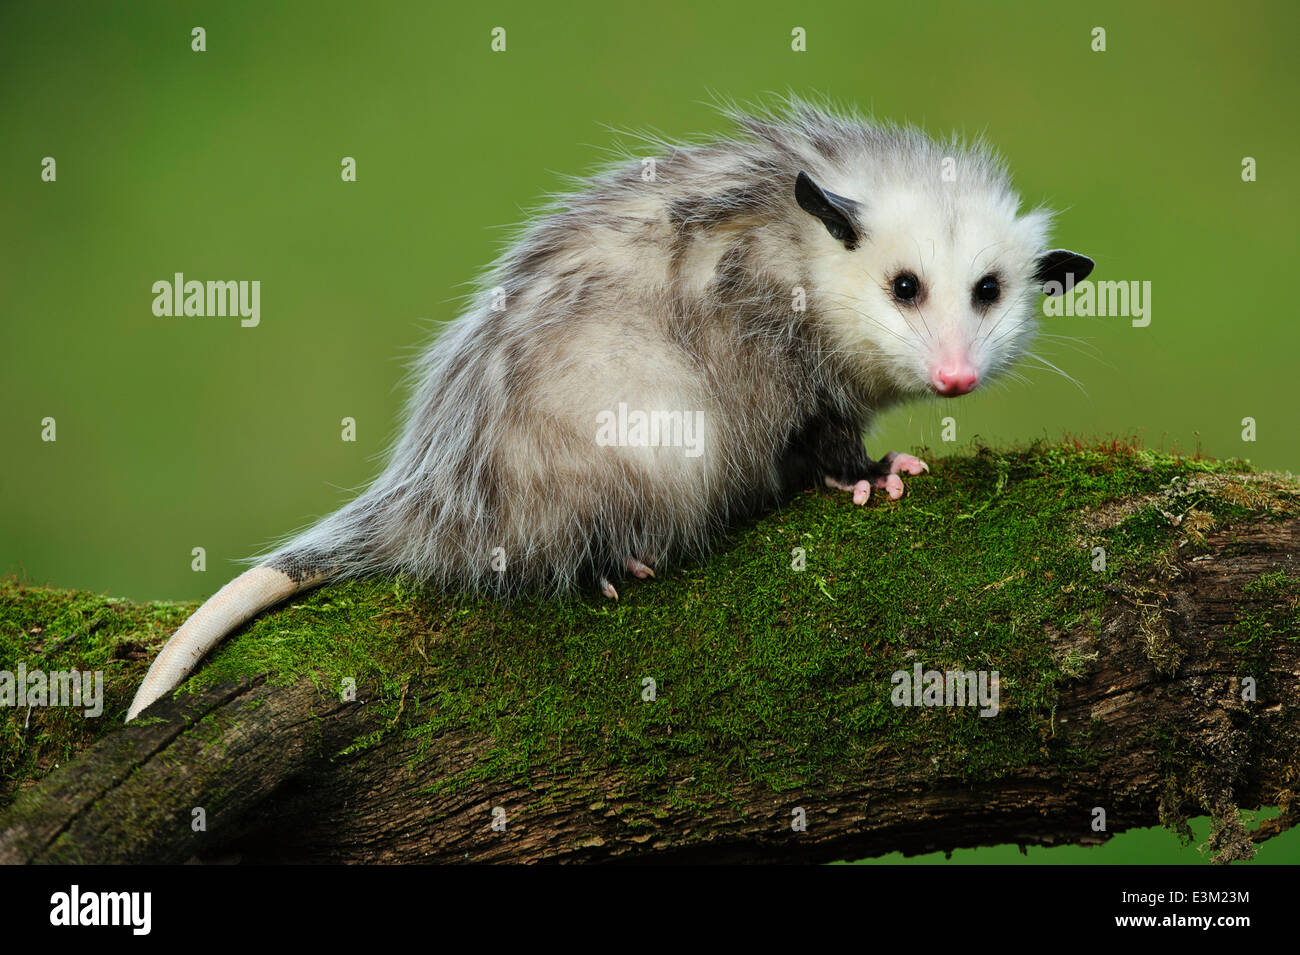 An 8 month old young opossum at Howell Nature Center, Michigan, United States - Stock Image